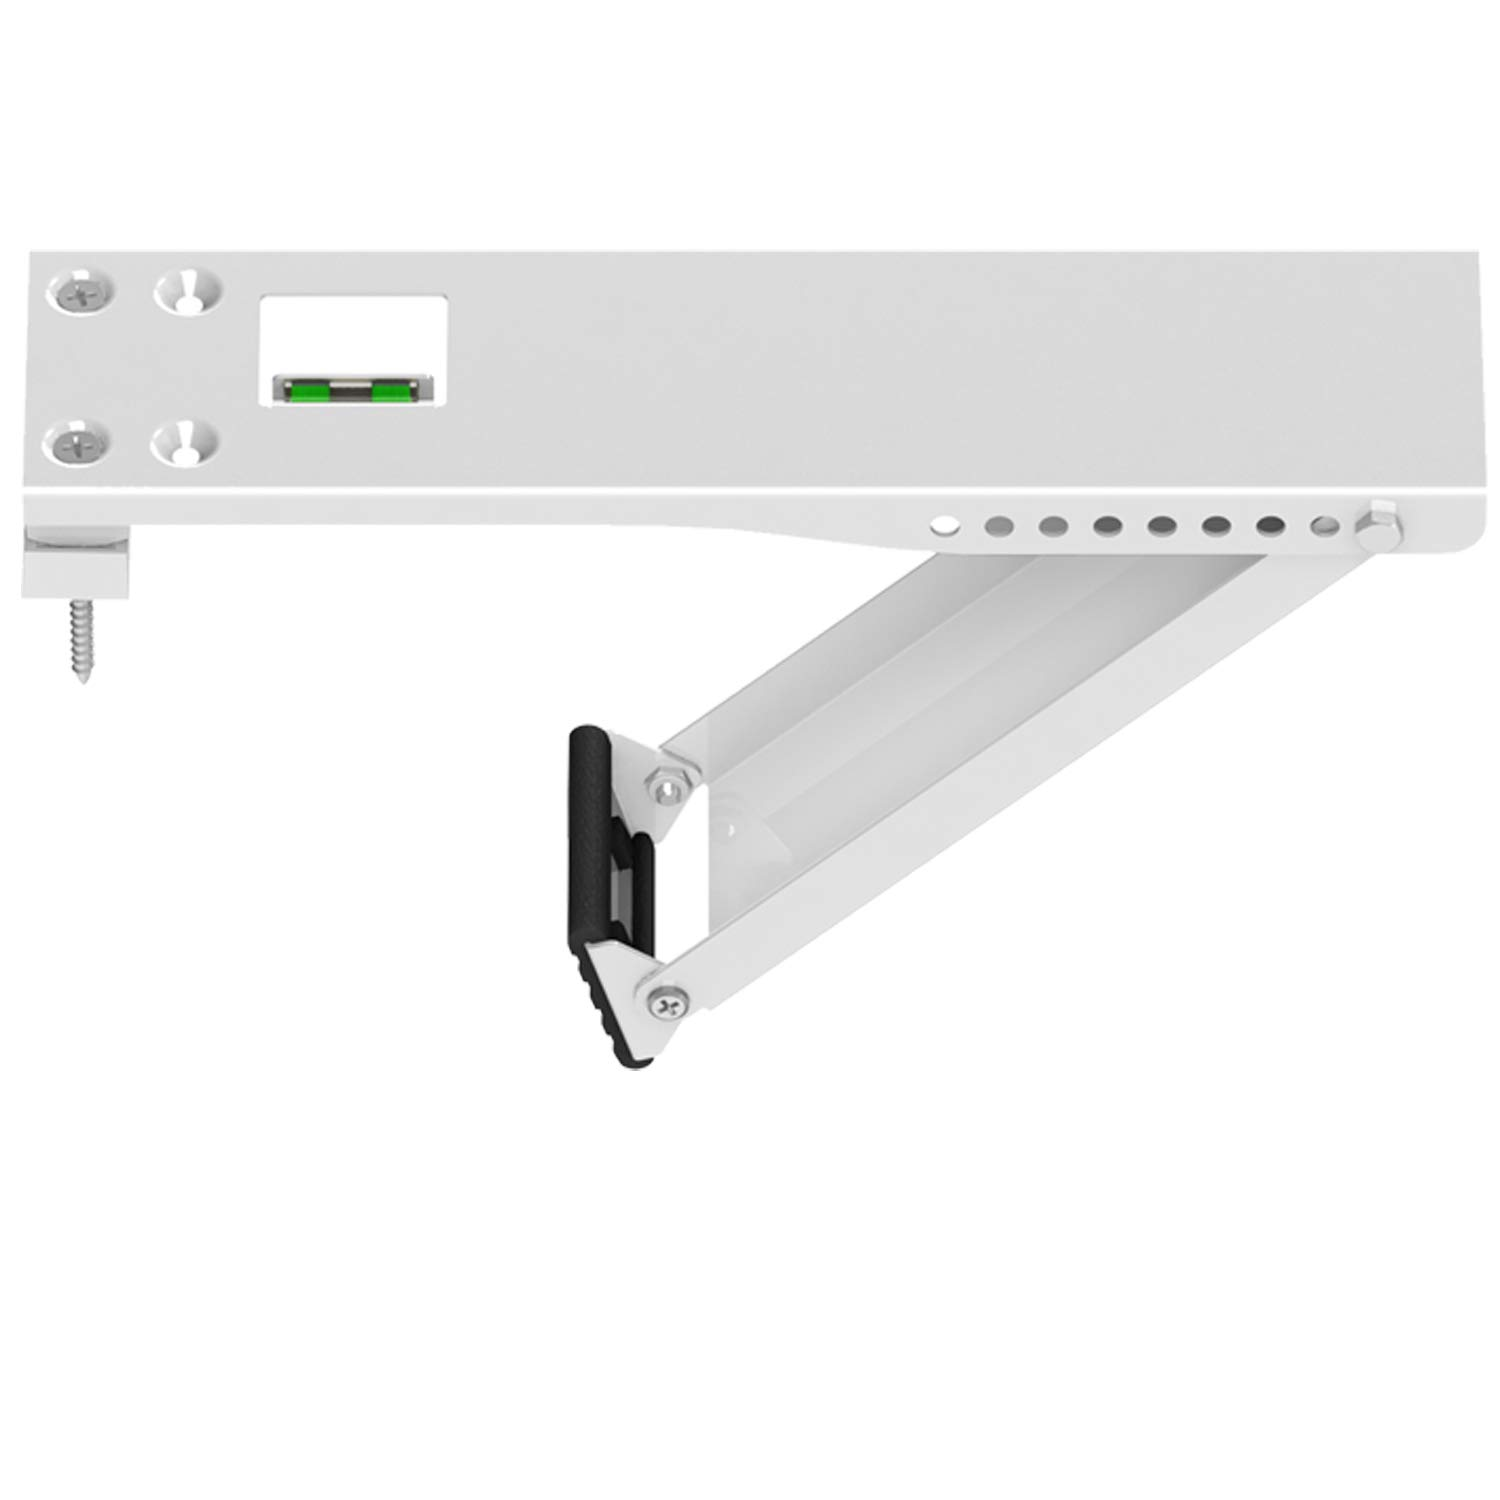 Jeacent Universal AC Window Air Conditioner Support Bracket Light Duty, Up to 85 lbs by Jeacent